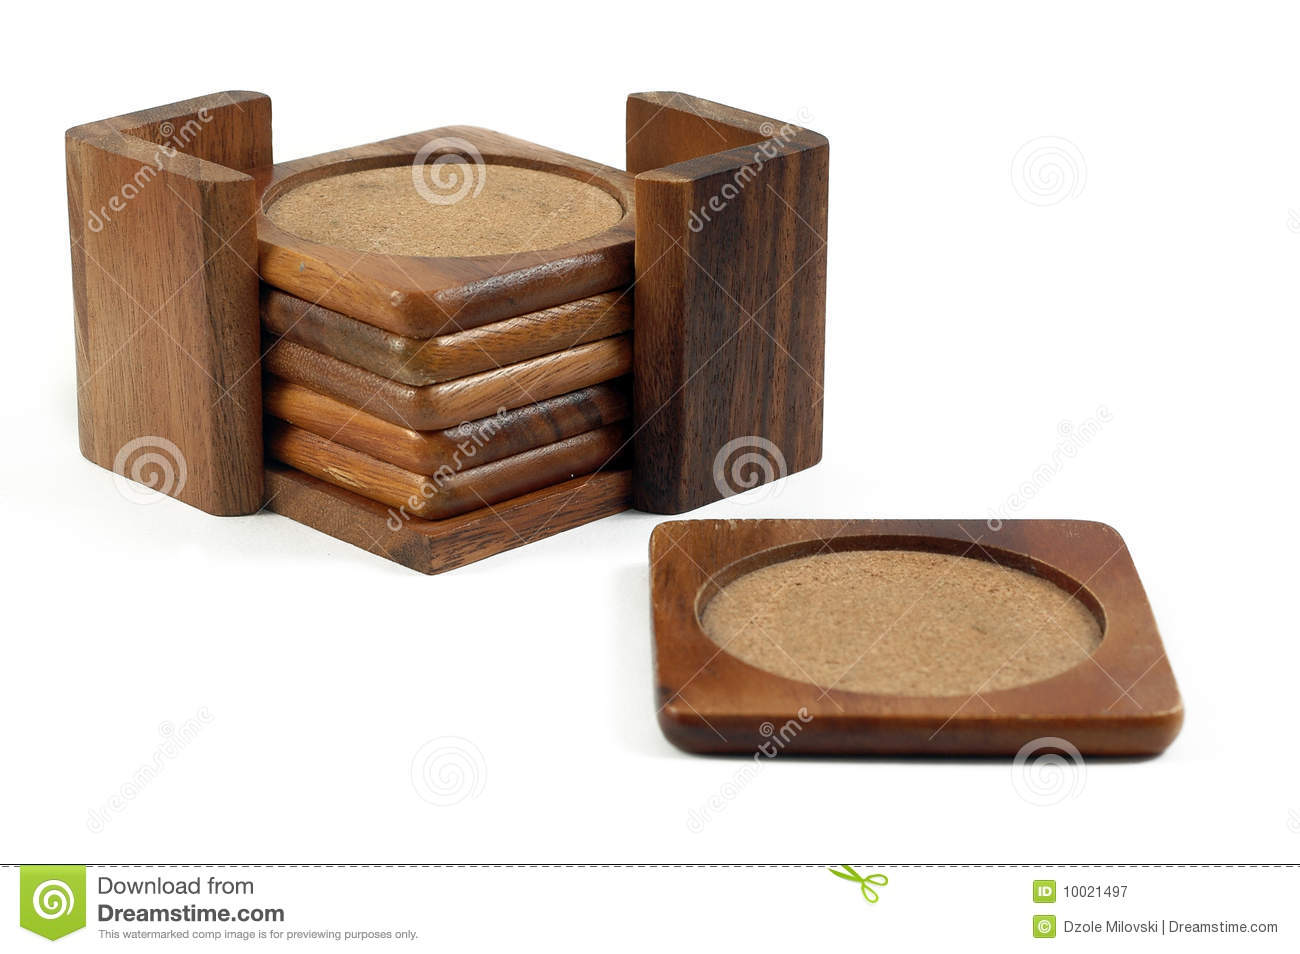 Wooden Drink Coaster Wooden Coasters Stock Image Image Of Clipping Decorative